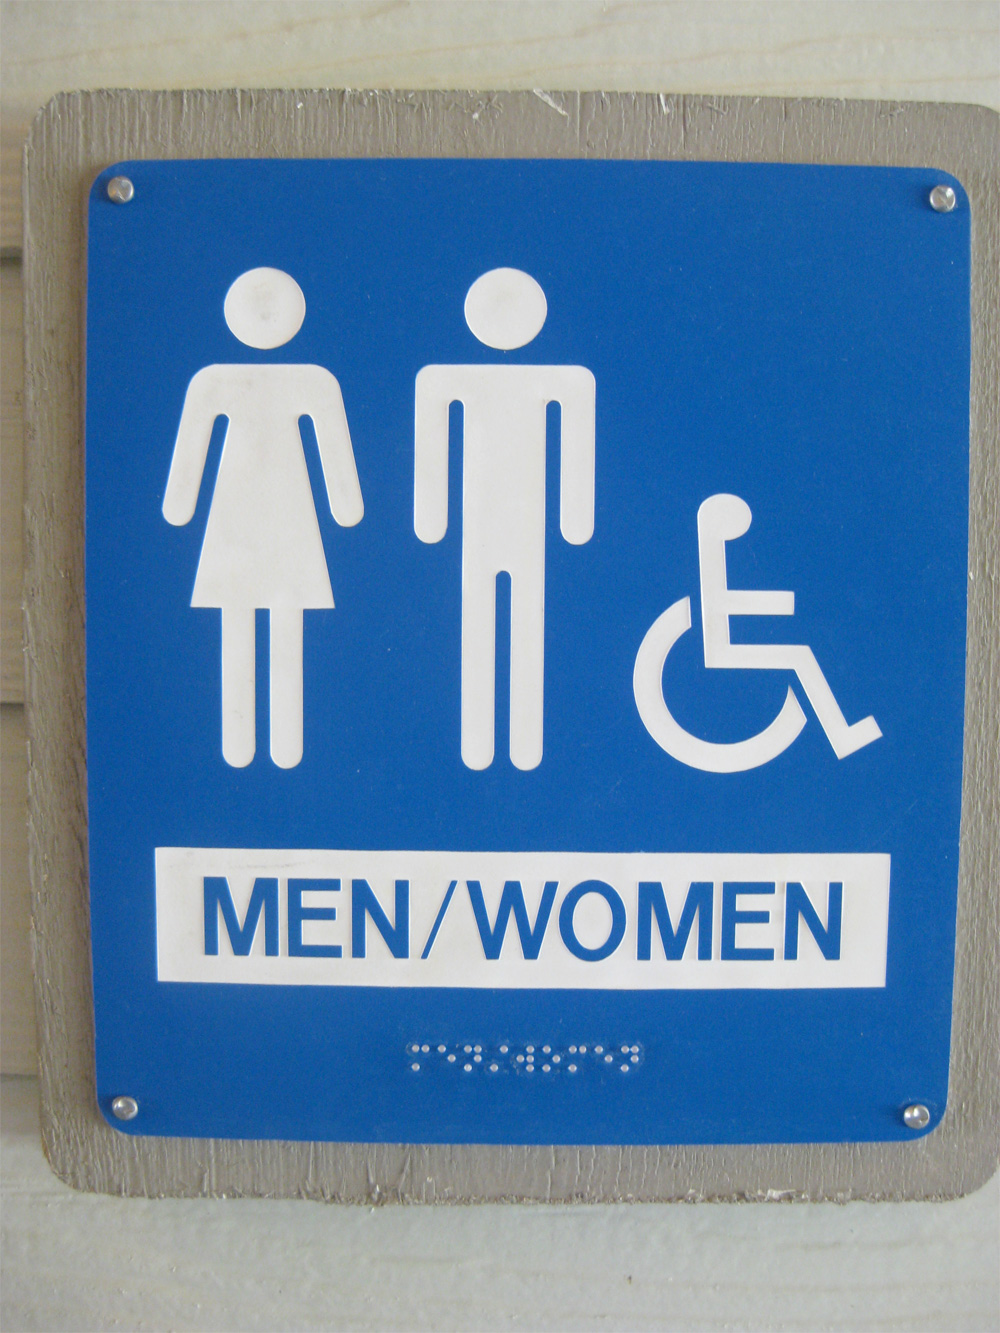 Bathroom Sign Language Baby bathroom access for transgender community poses design challenge